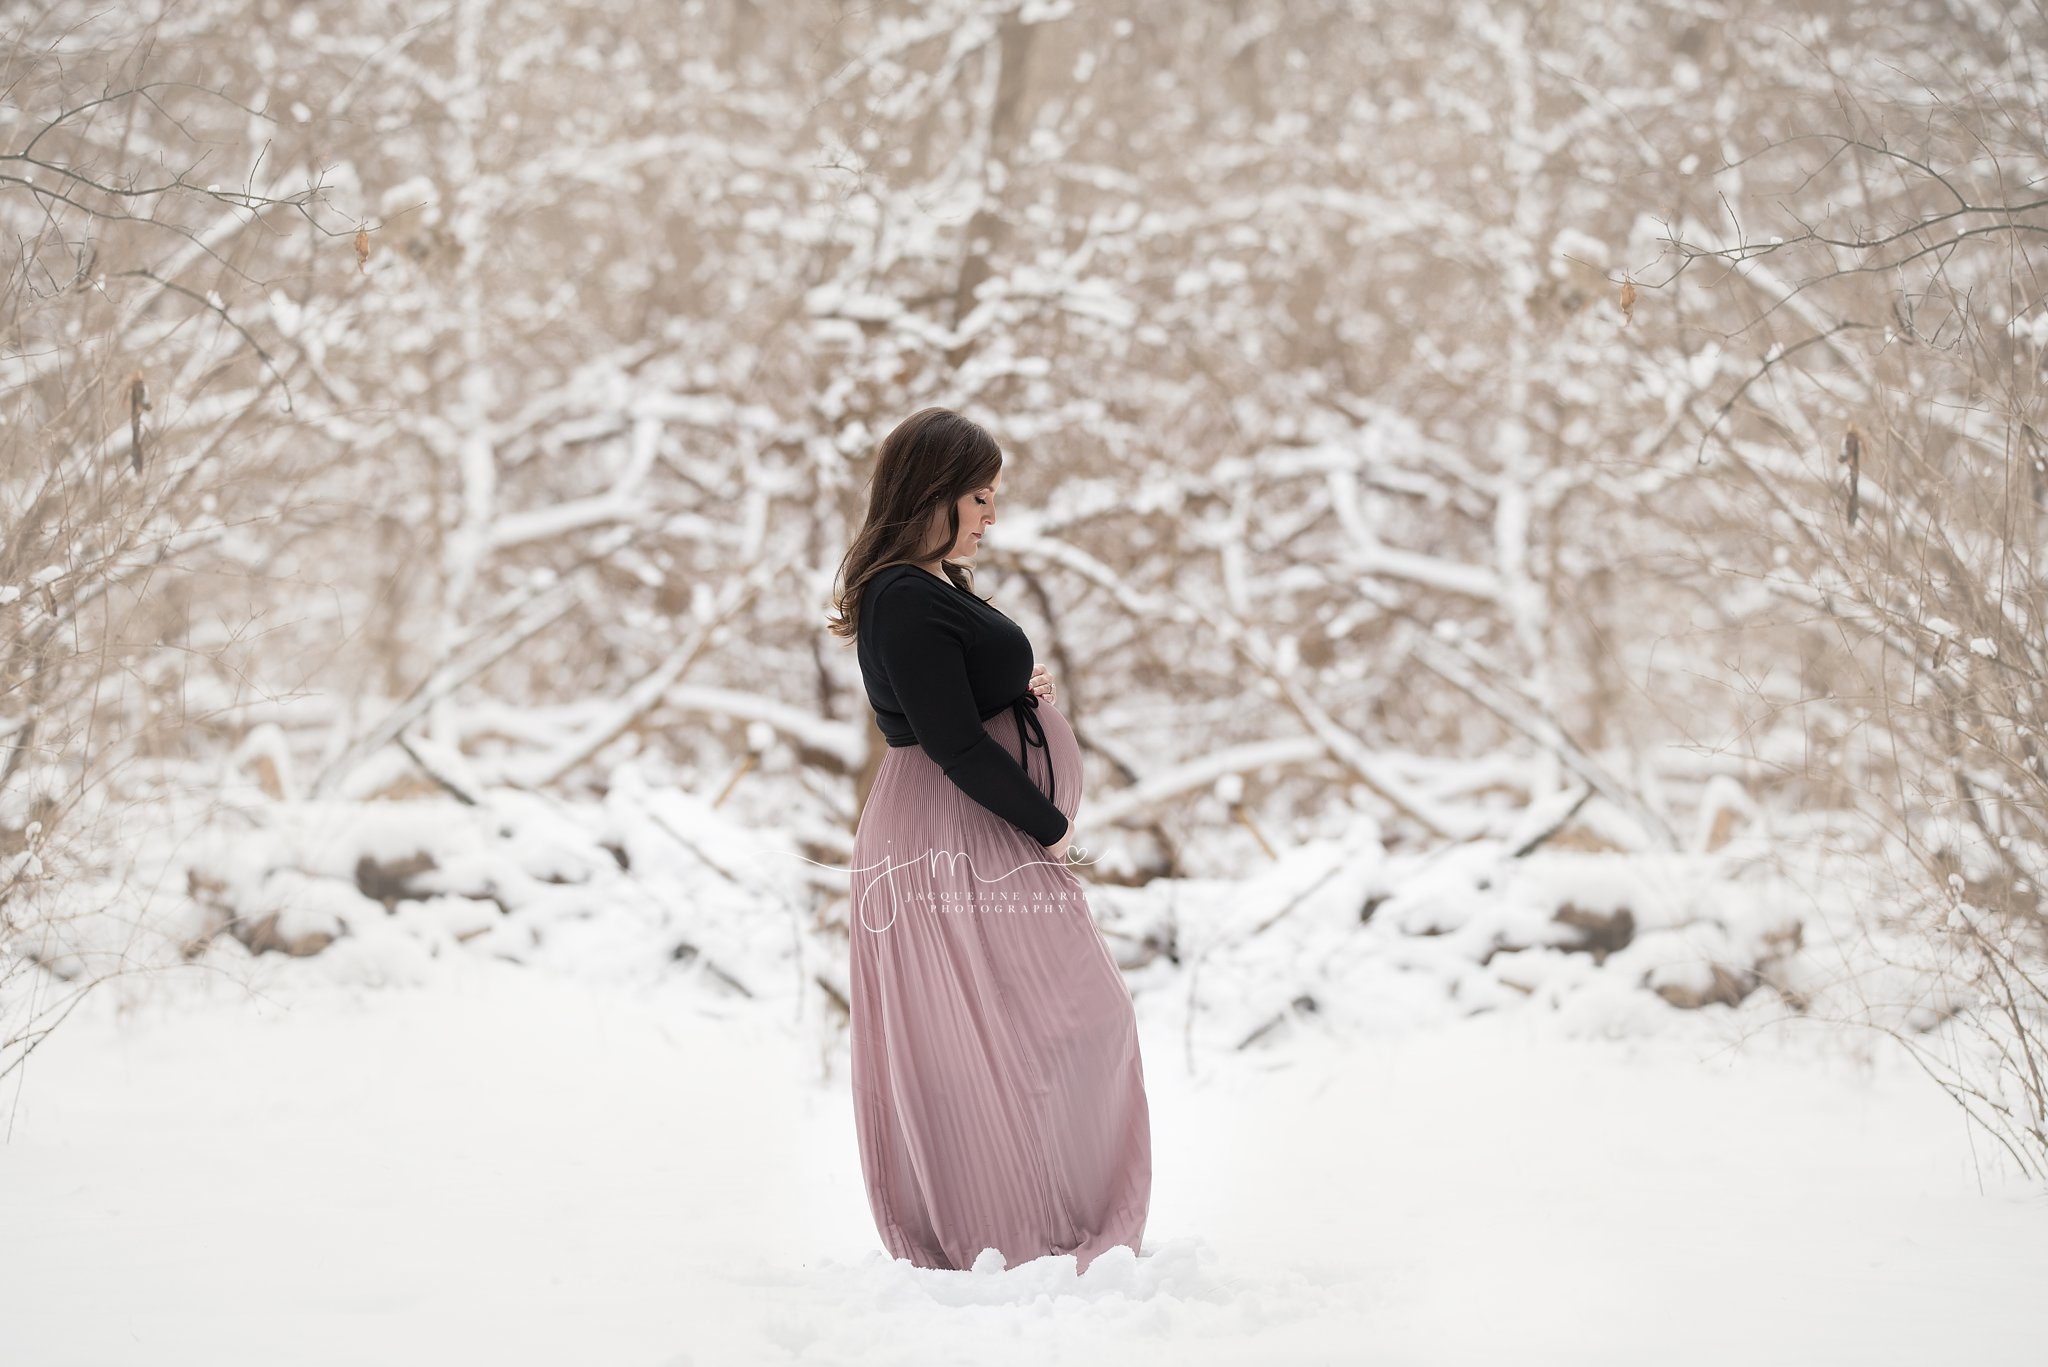 winter maternity session in the snow wearing pink dress